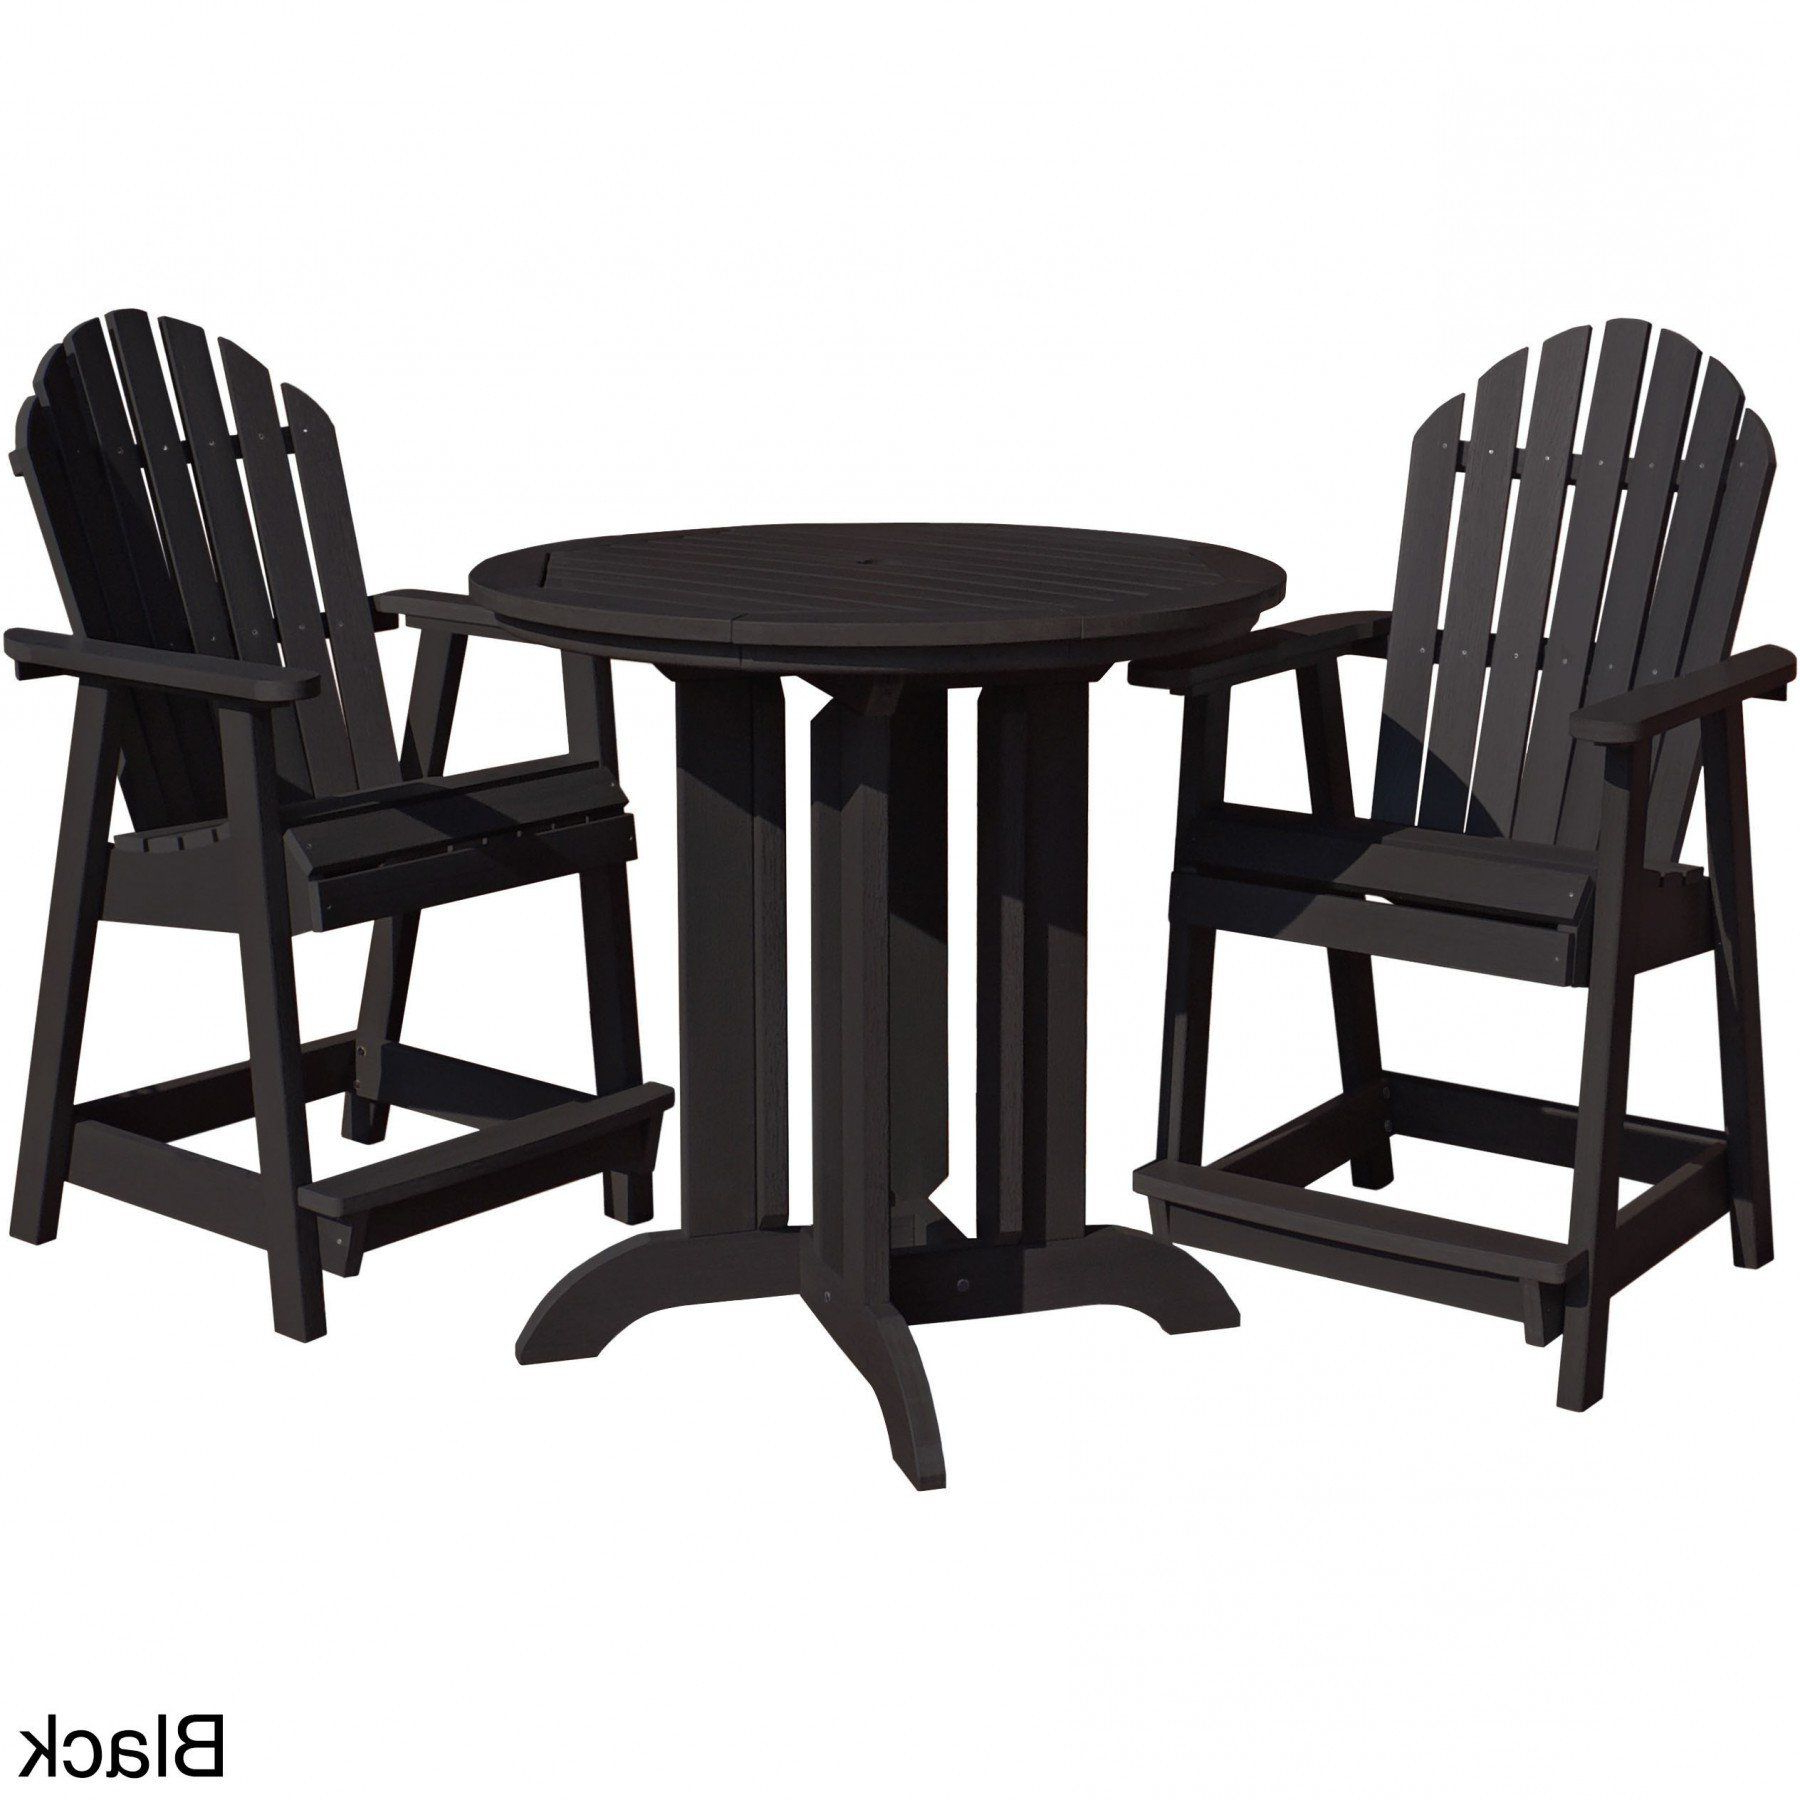 Highwood Usa Eco Friendly Hamilton 3 Piece Round Counter Dining Set For Popular Winsted 4 Piece Counter Height Dining Sets (View 9 of 25)